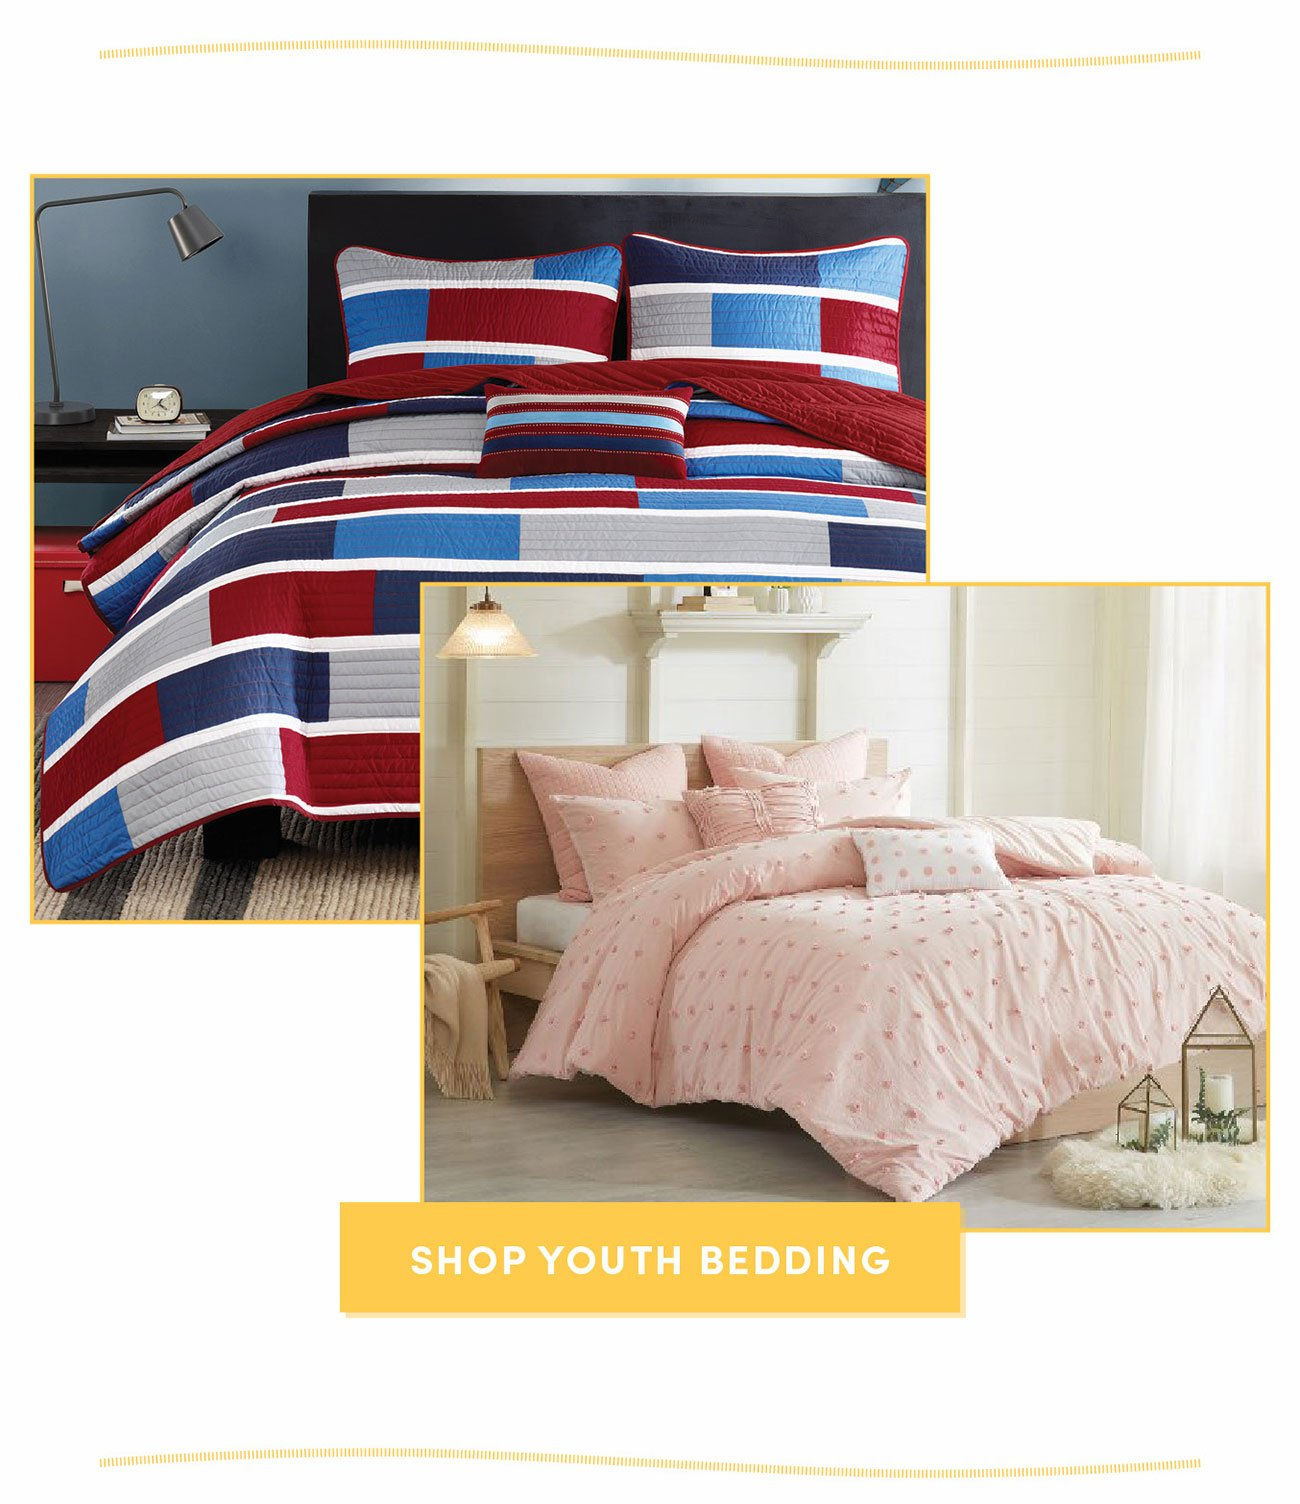 Shop-youth-bedding